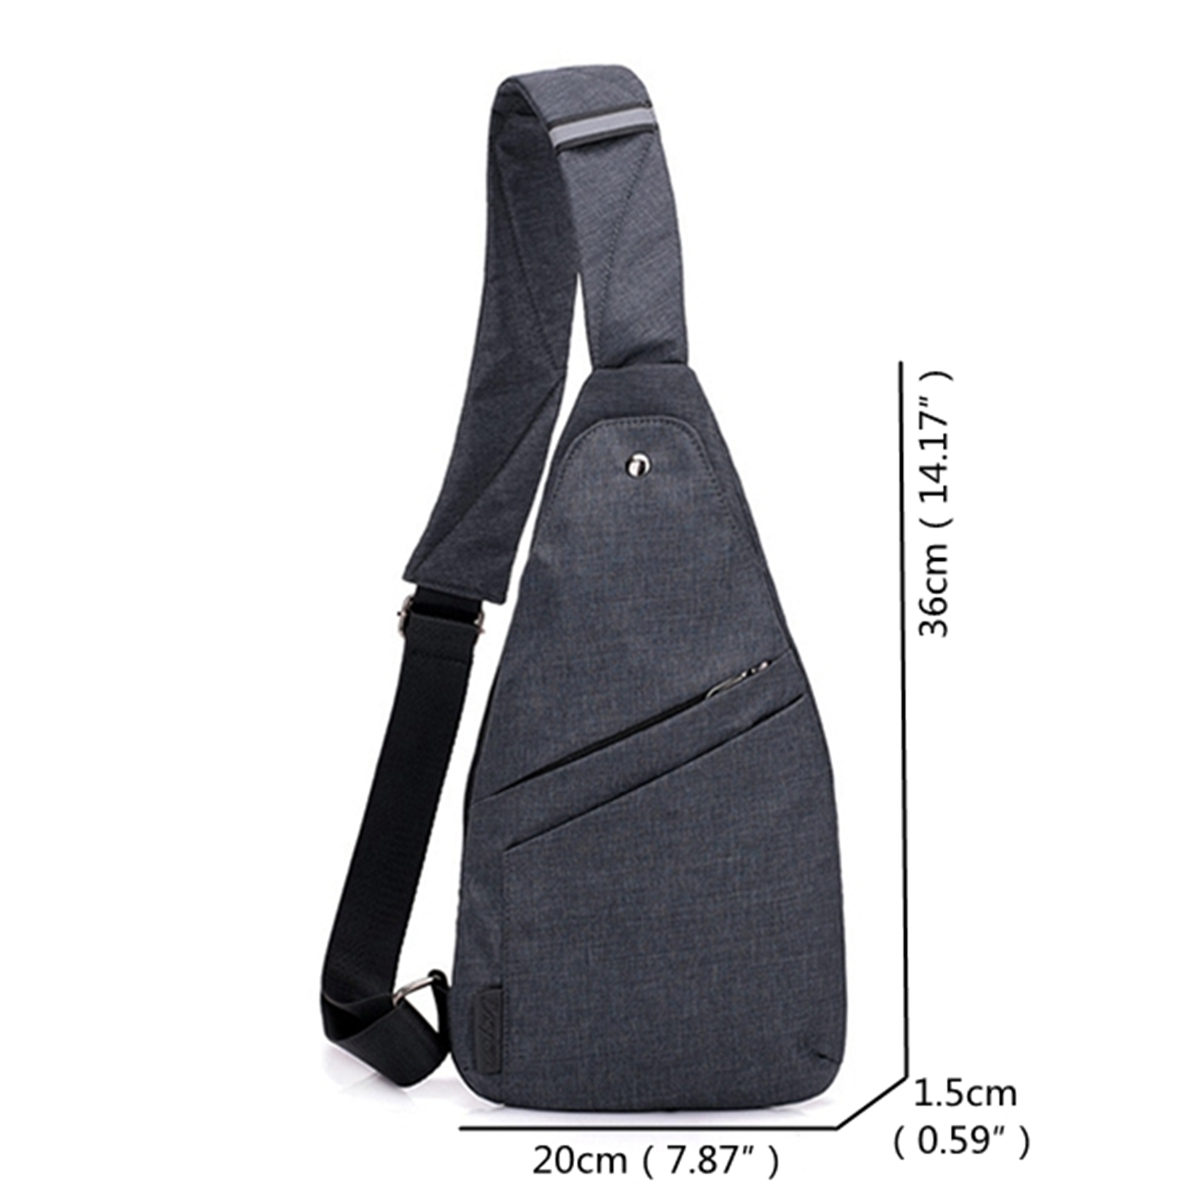 Oxford Anti-theft Water Resistant Outdoor Travel Sling Bag Chest Bag Crossbody Bag For Men